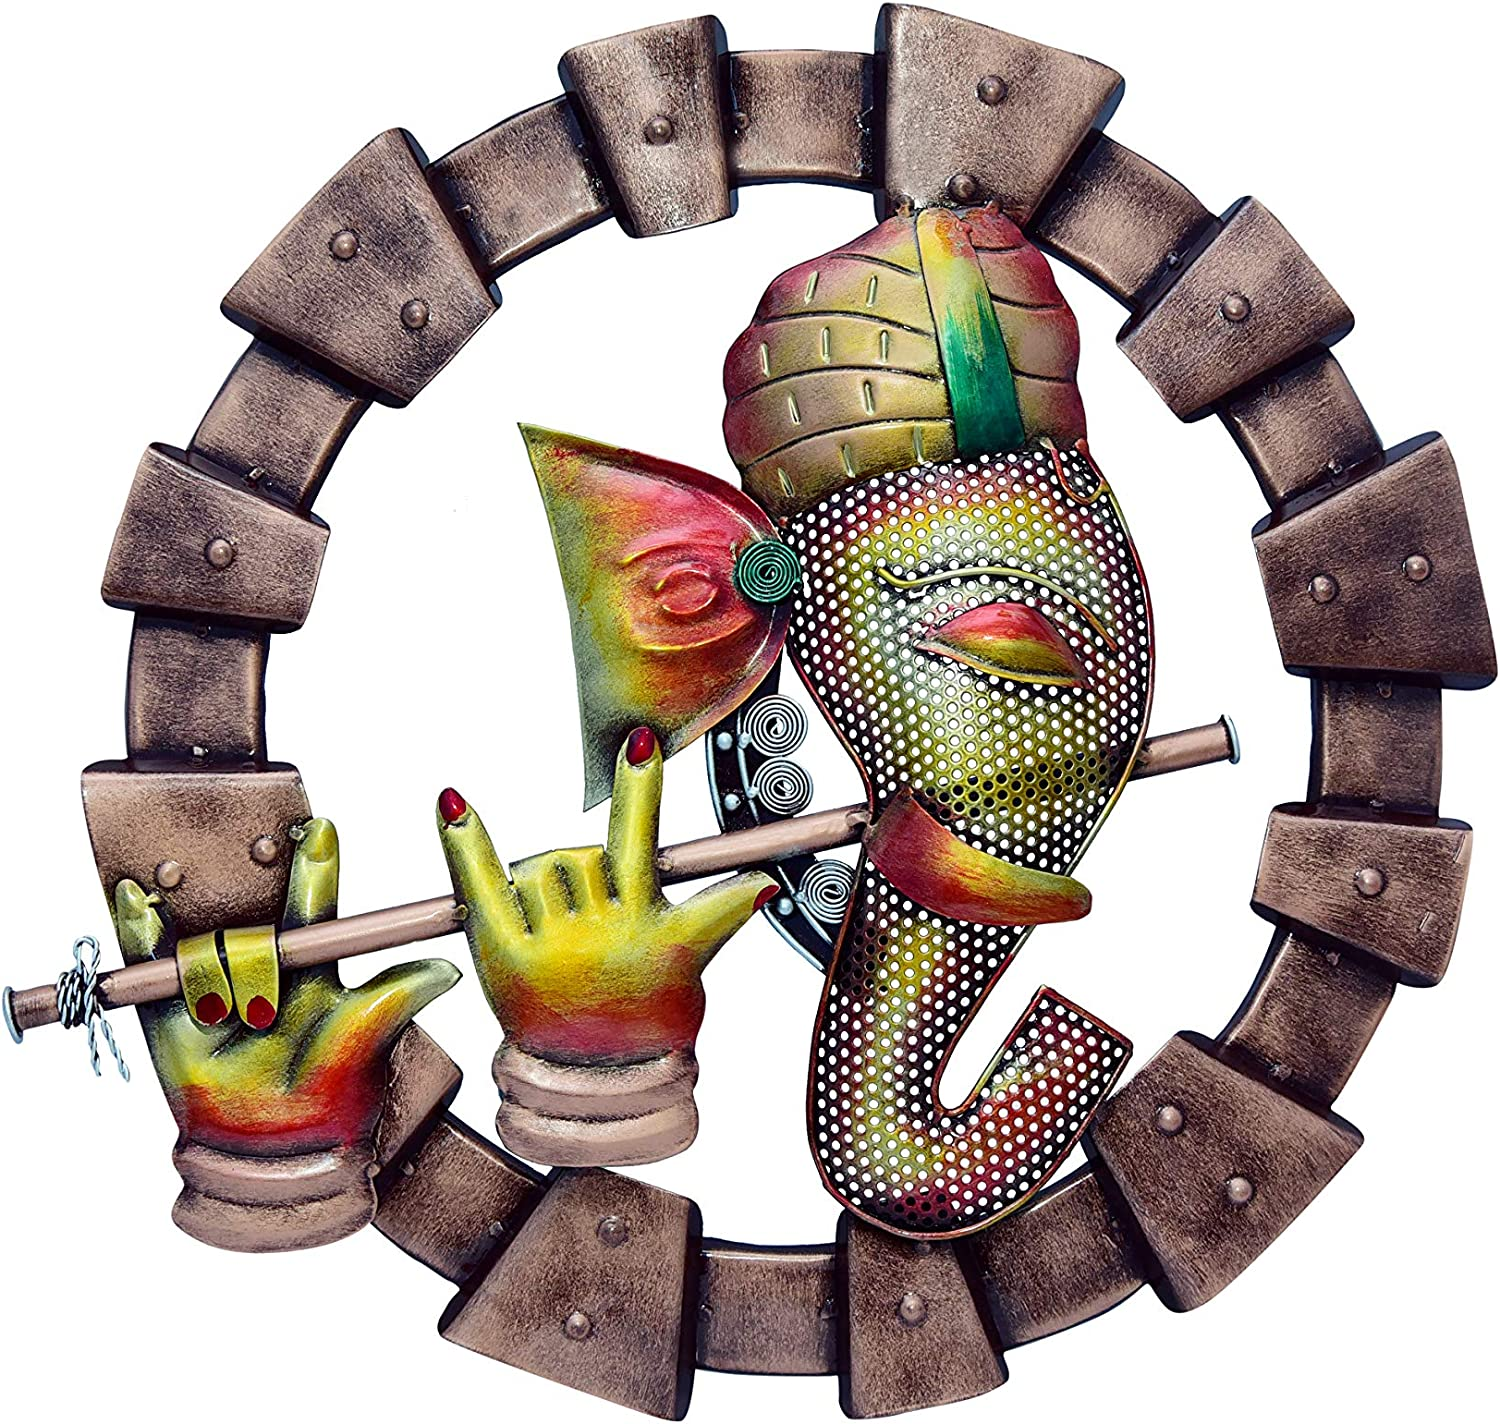 ROCOMO Metal Ganesha Wall Hanging Frame | Round Ganesh Flute Wall Mount Decor Showpiece for Home Office Living Space, Multicolour (21x3x19 Inch)